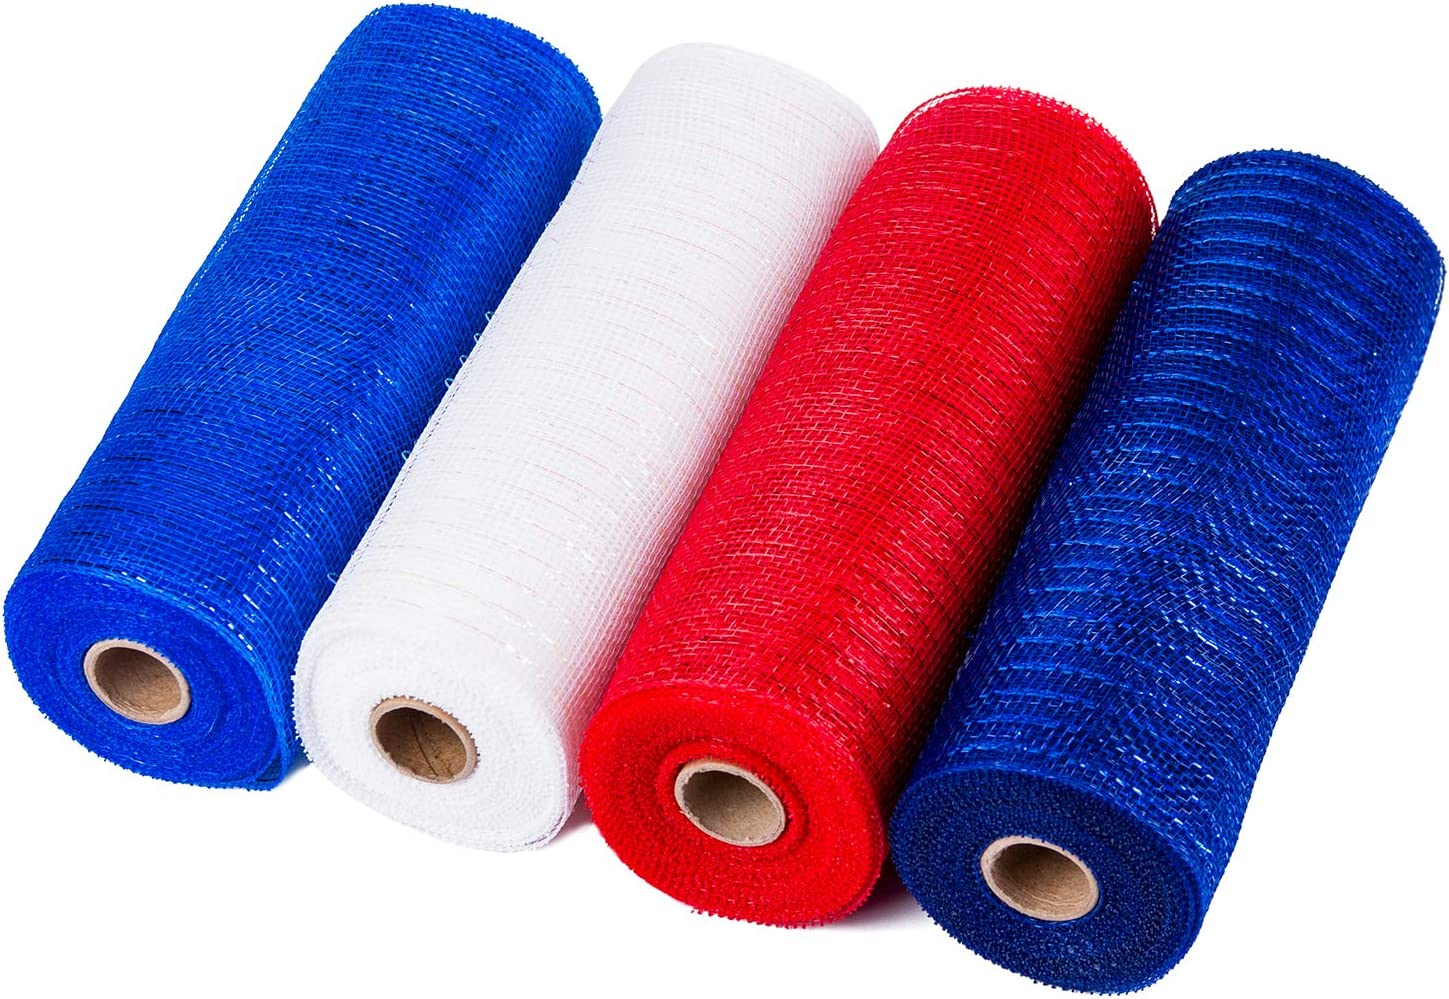 LaRibbons Deco Poly Mesh Ribbon - 10 inch x 30 feet Each Roll - Metallic Foil Red/Royal/White/Navy Set for Wreaths, Swags and Decorating - 4 Pack